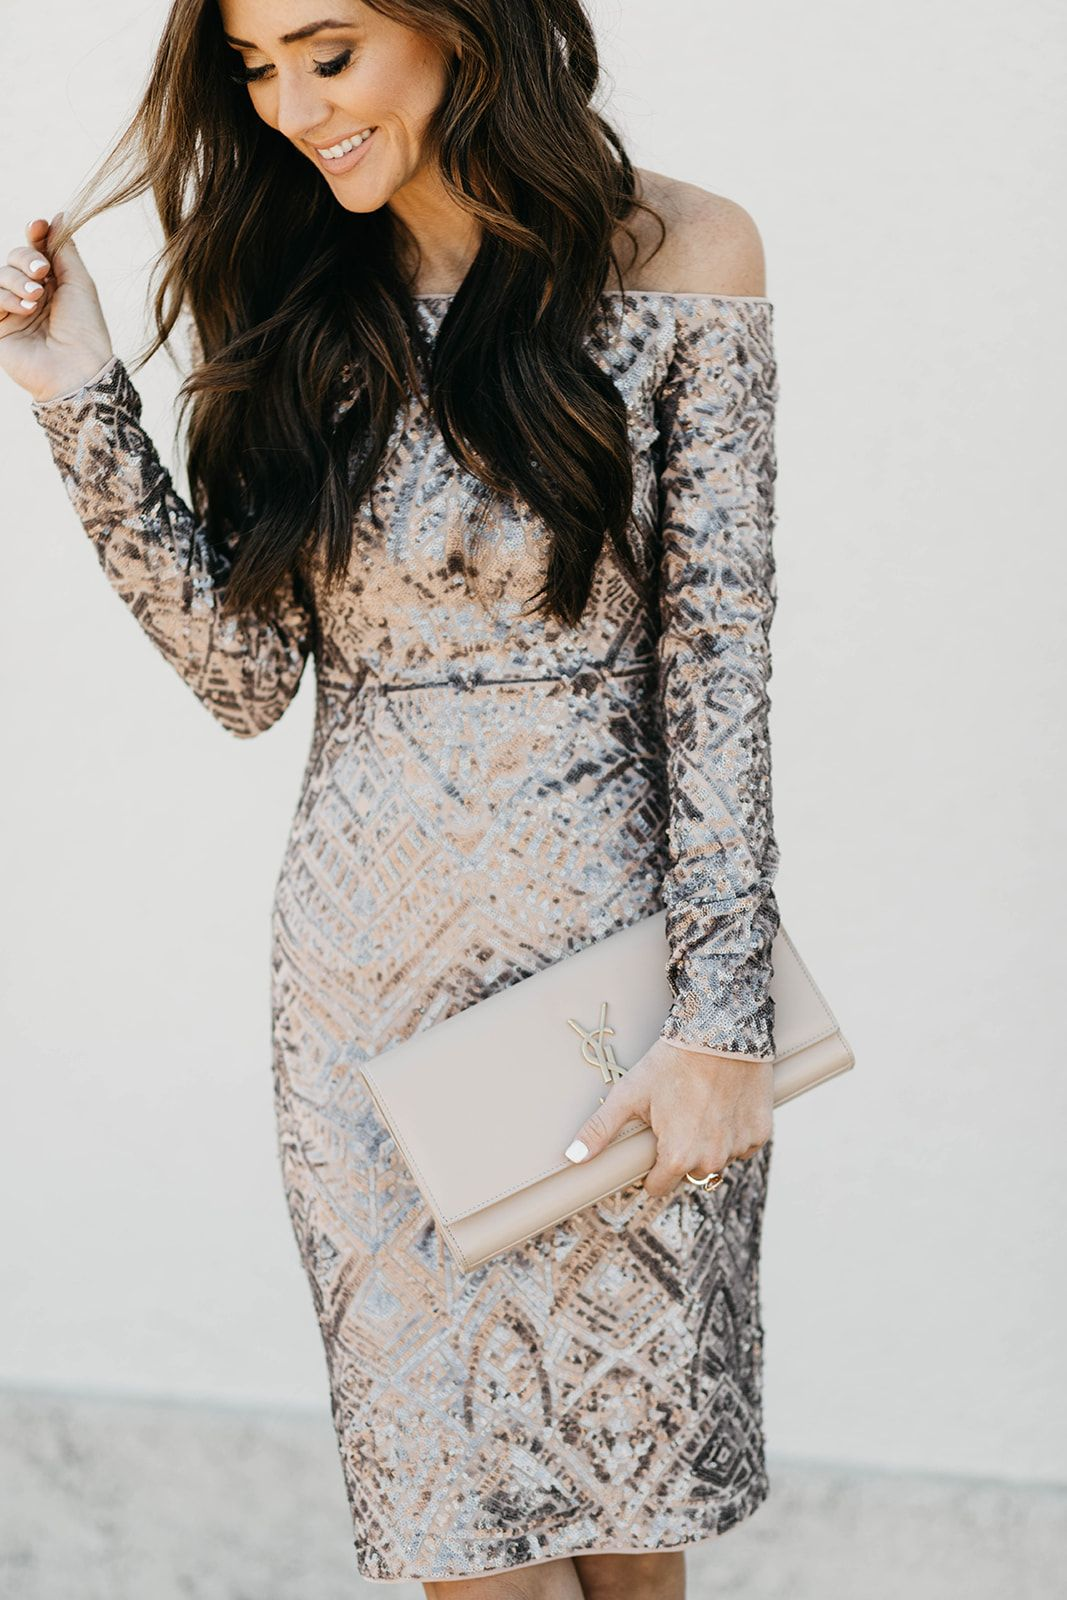 Sequined Nye Dress Wedding Attire Guest Eve Outfit New Years Eve Outfits [ 1600 x 1067 Pixel ]